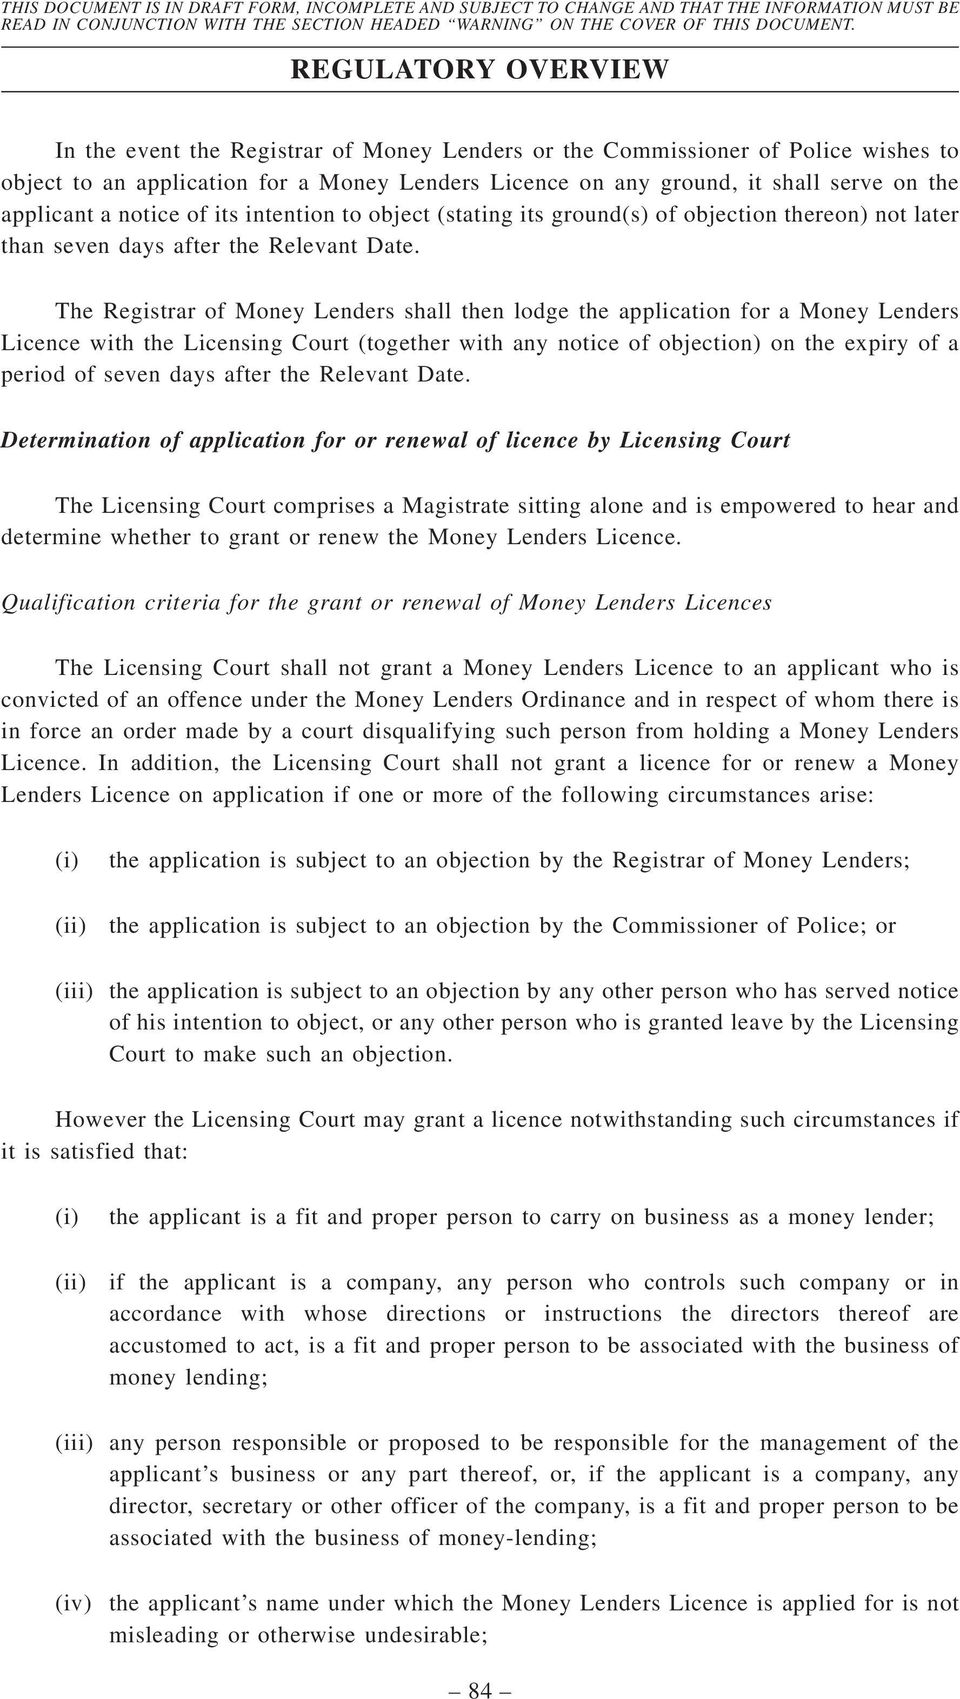 The Registrar of Money Lenders shall then lodge the application for a Money Lenders Licence with the Licensing Court (together with any notice of objection) on the expiry of a period of seven days